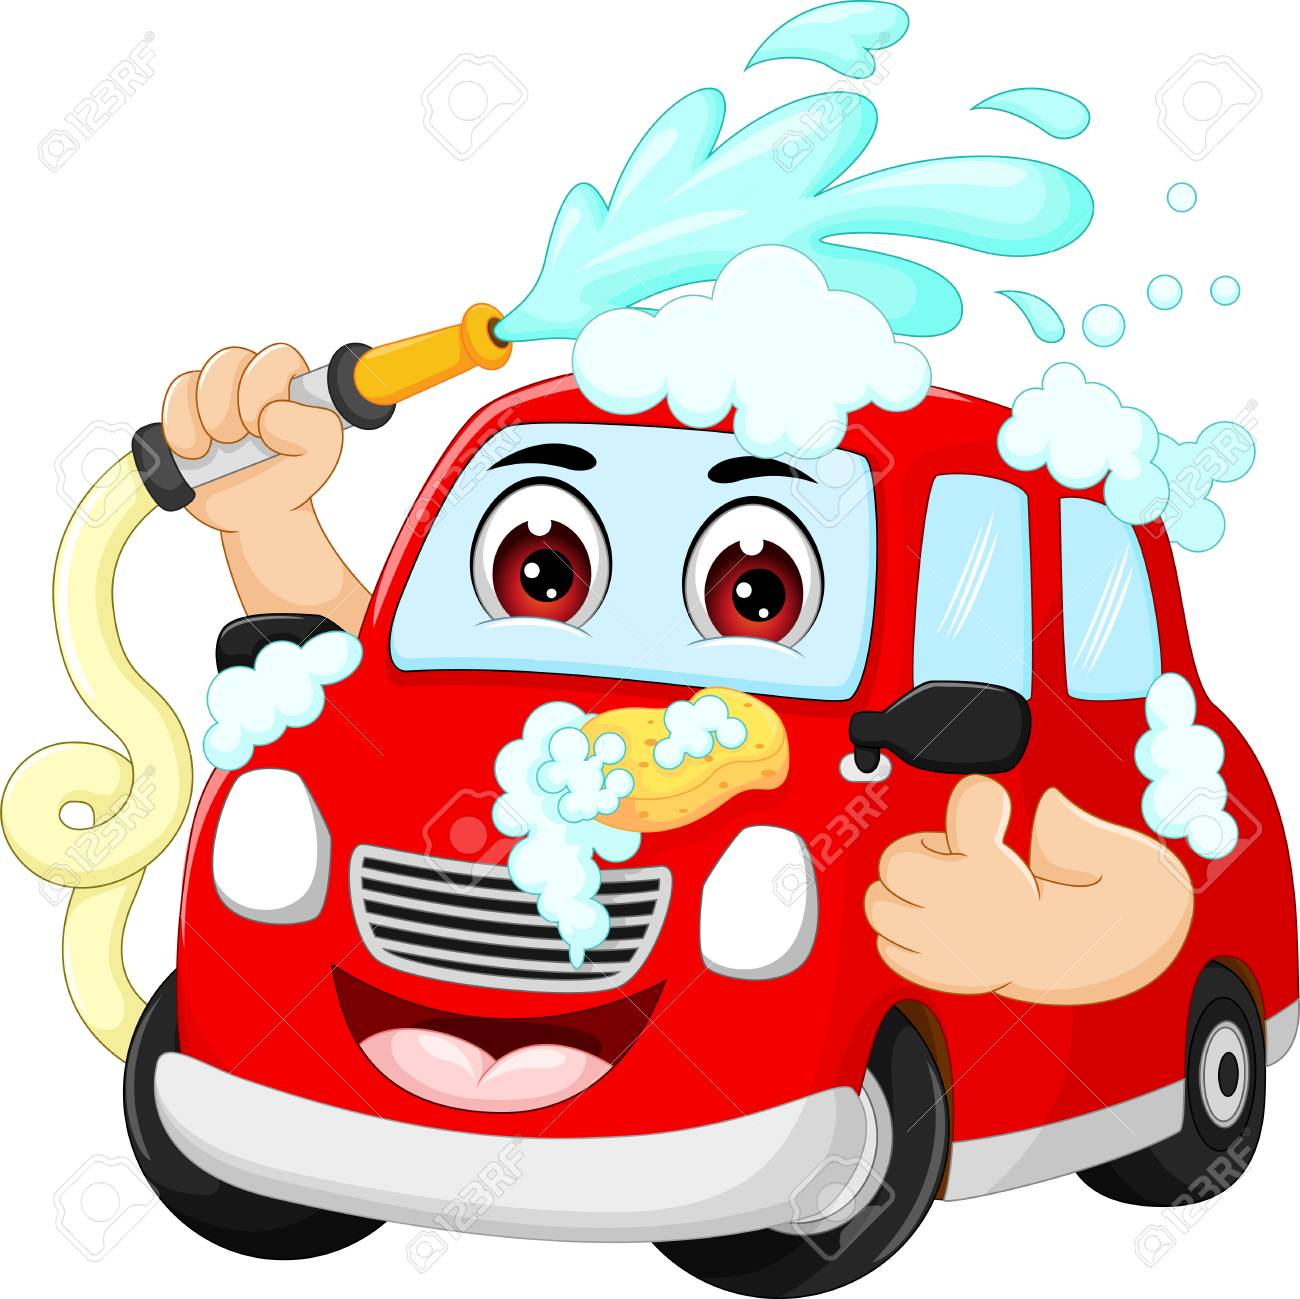 Clean car clipart 4 » Clipart Station.